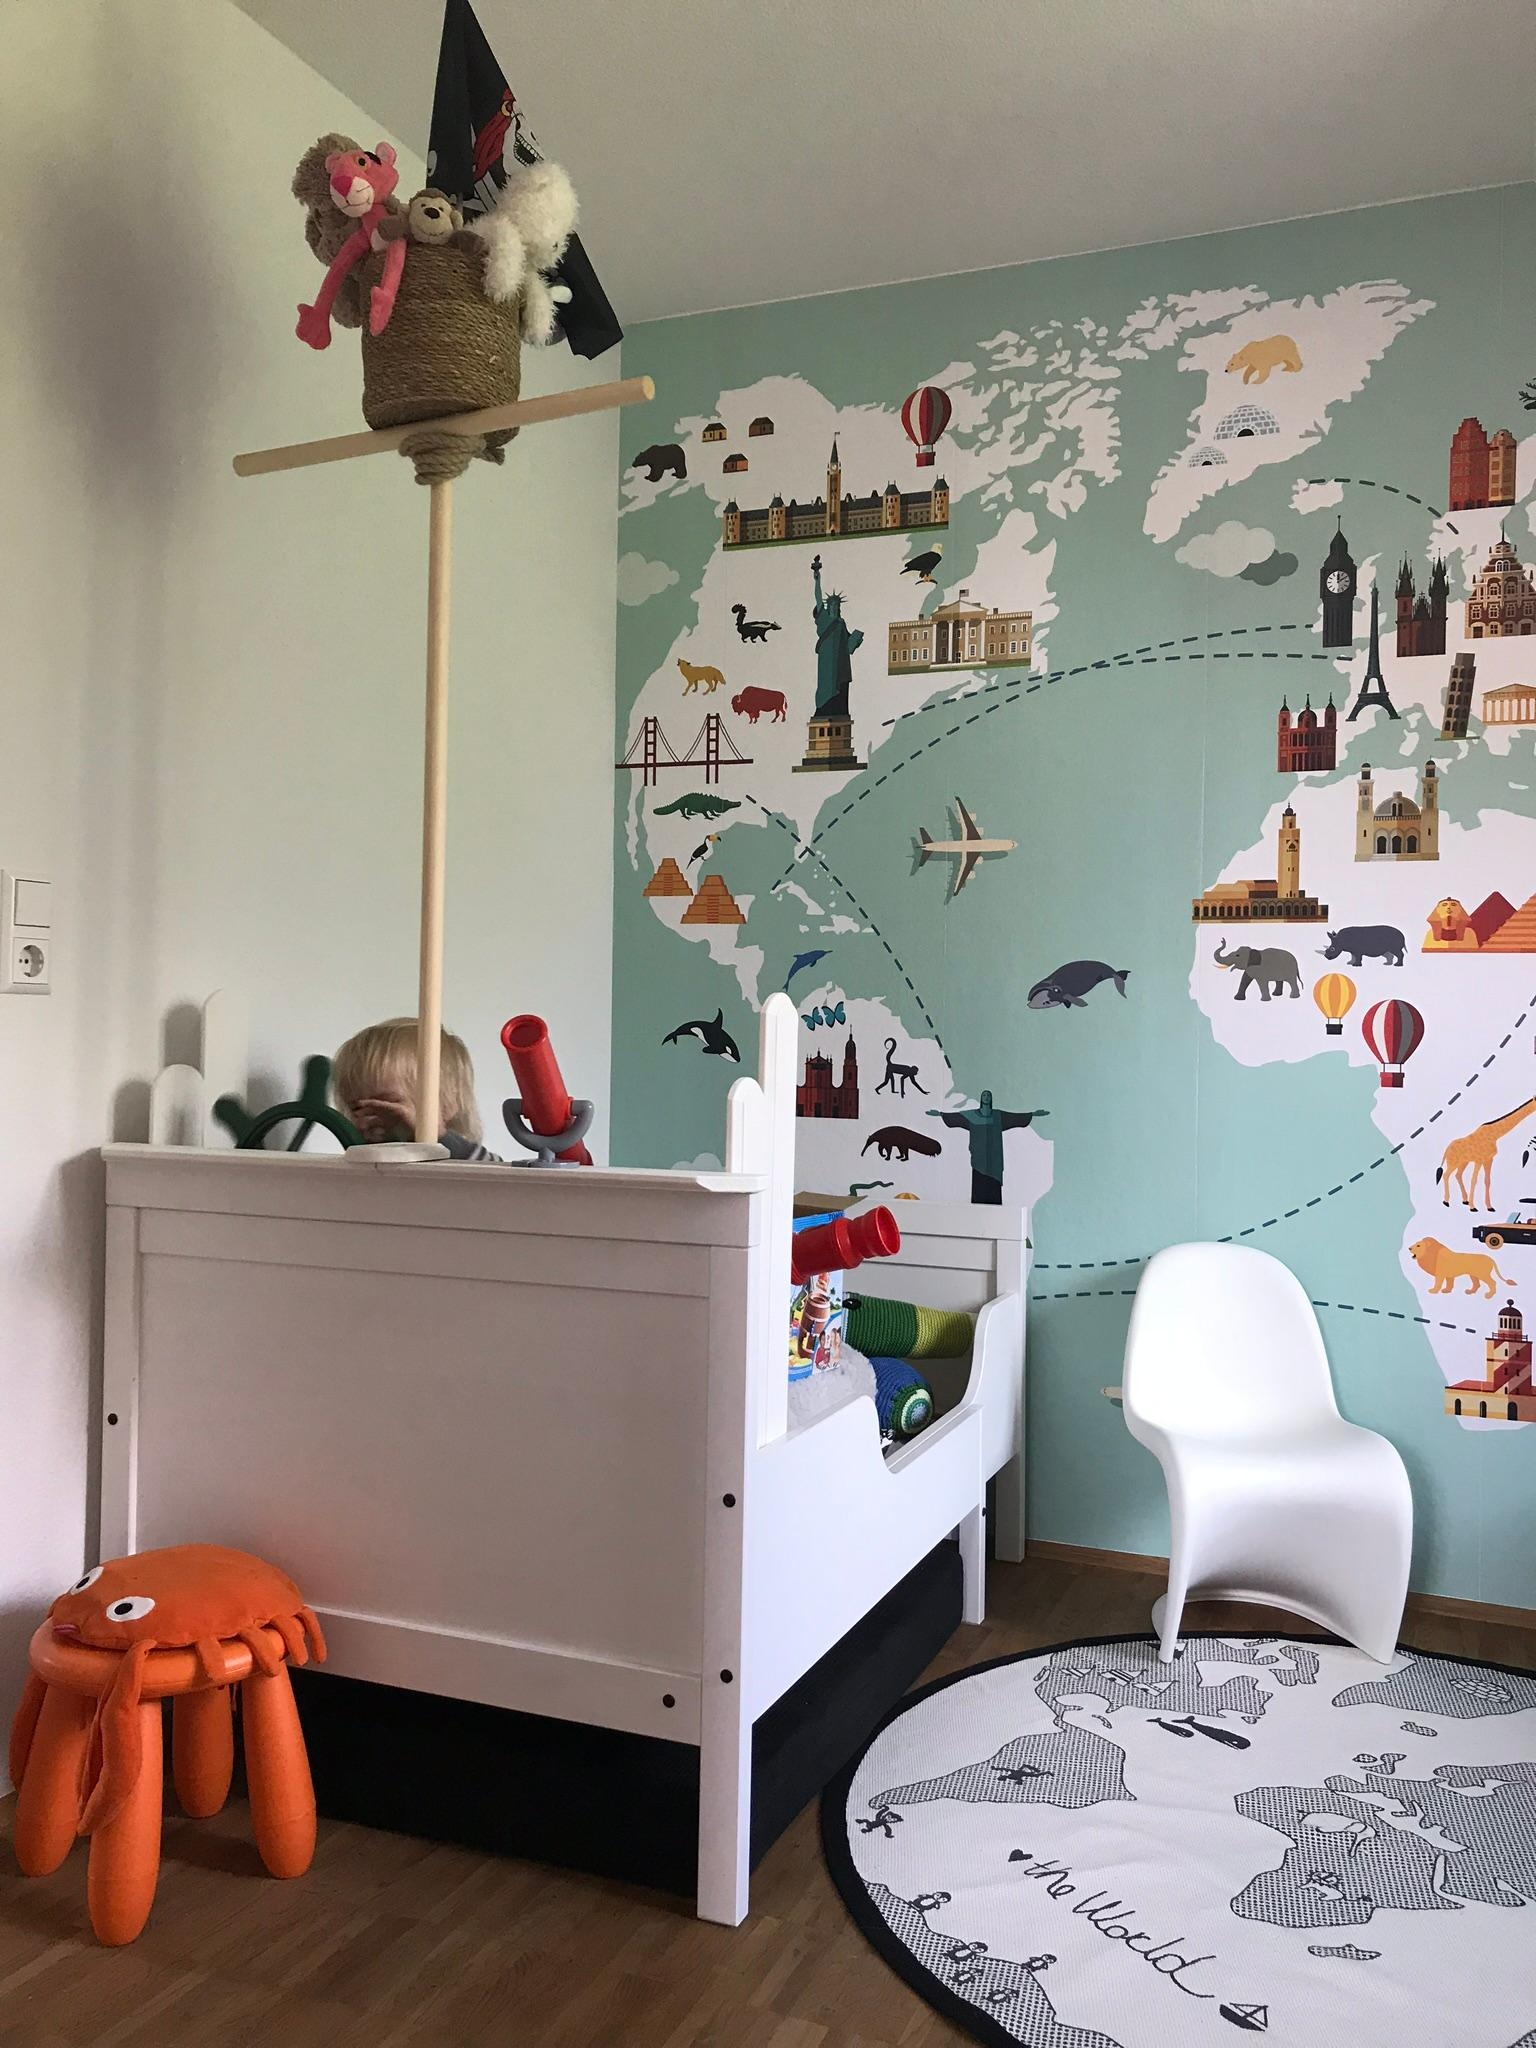 In love with wallpaper #kinderzimmer #boysroom #wallpaper